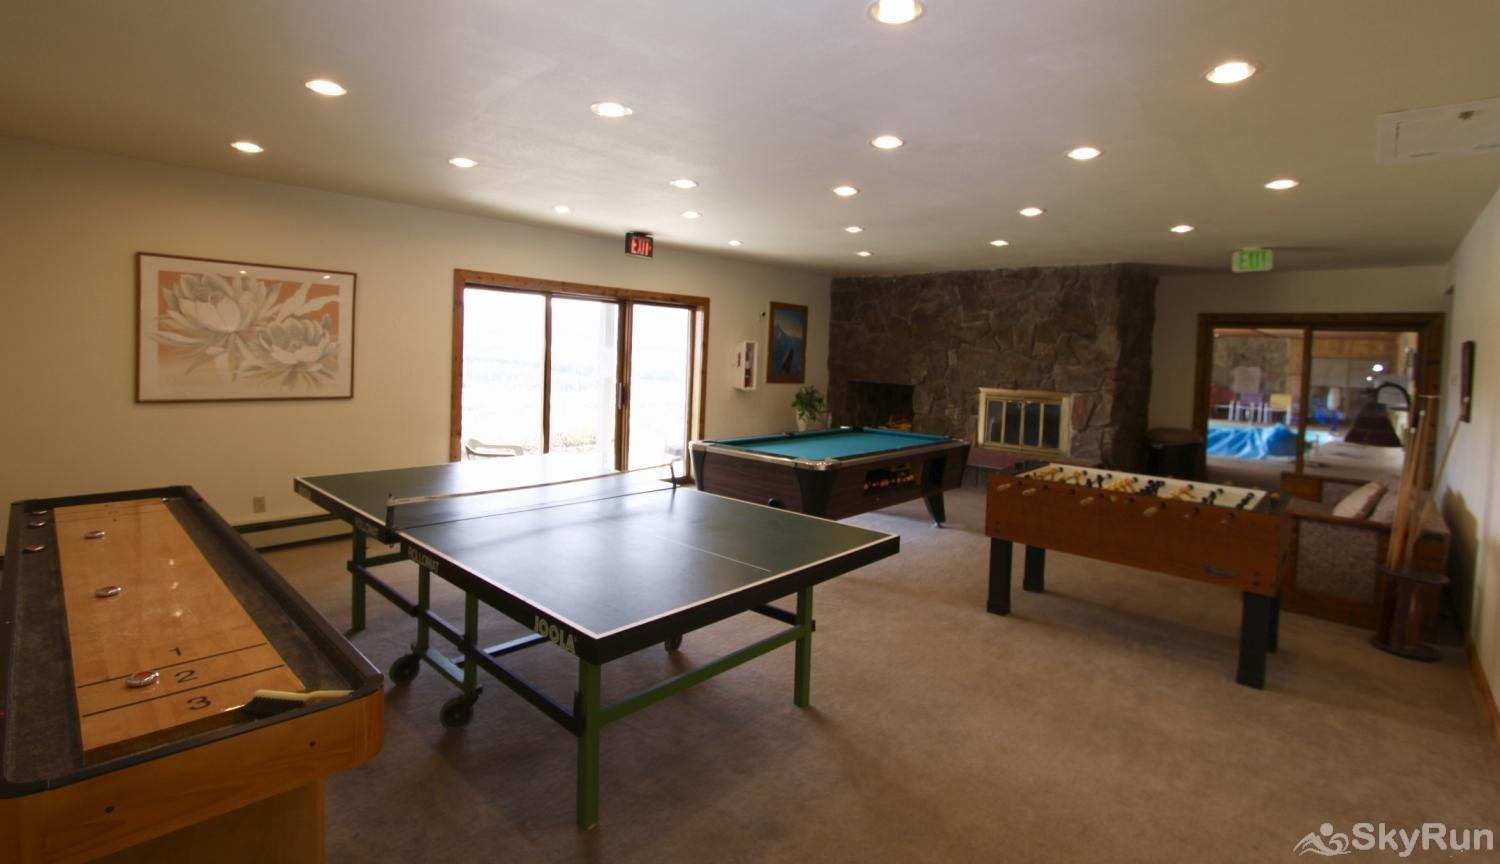 113AB WPTC - Cranmer Rd Common Game Room